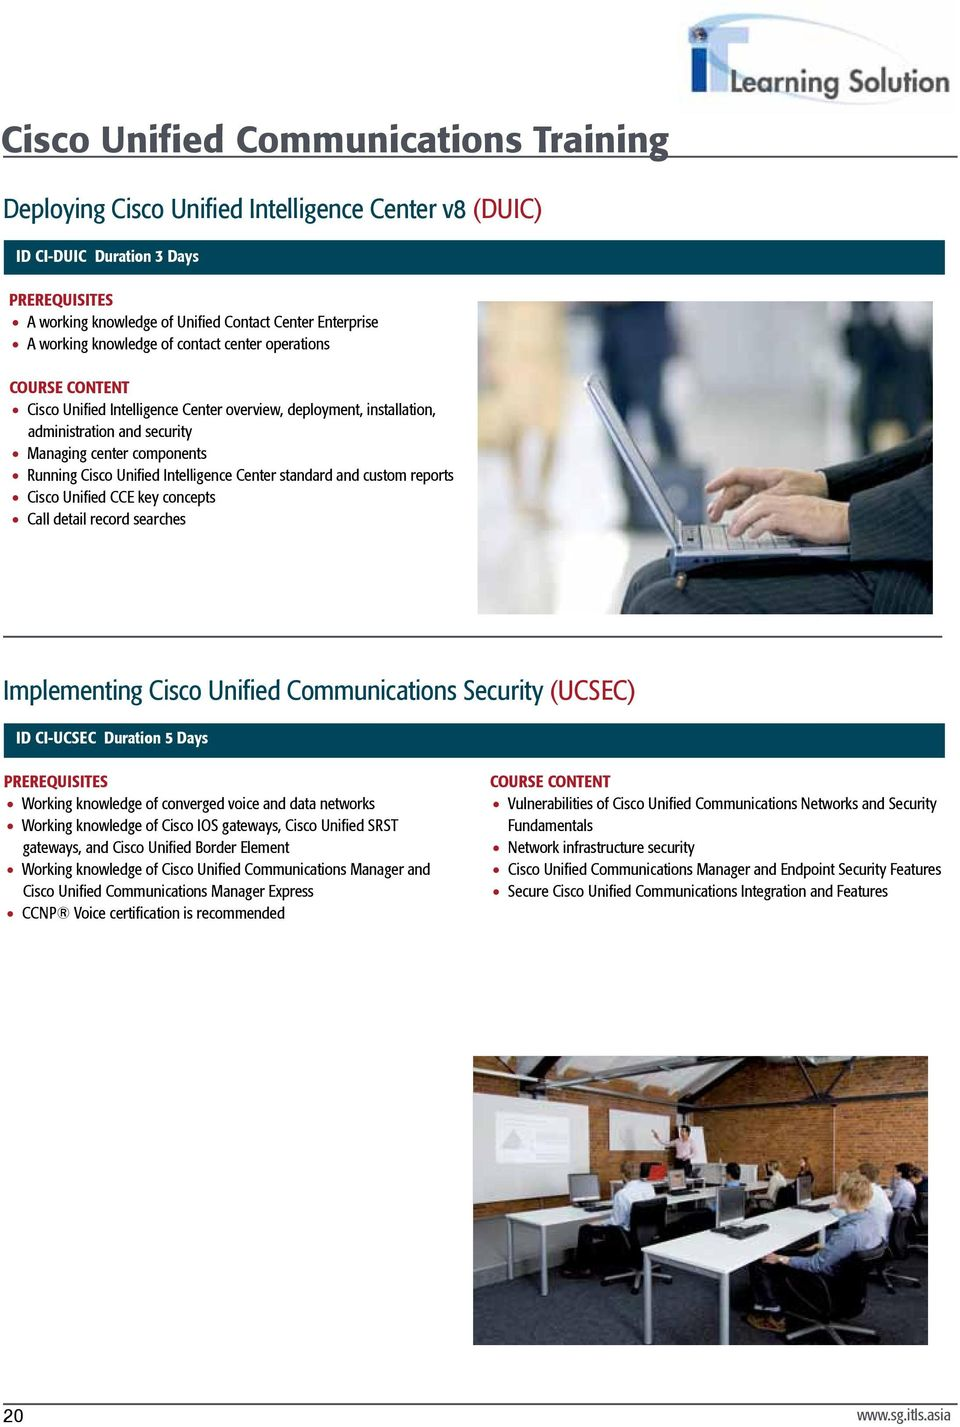 standard and custom reports Cisco Unified CCE key concepts Call detail record searches Implementing Cisco Unified Communications Security (UCSEC) ID CI-UCSEC Duration 5 Days Working knowledge of